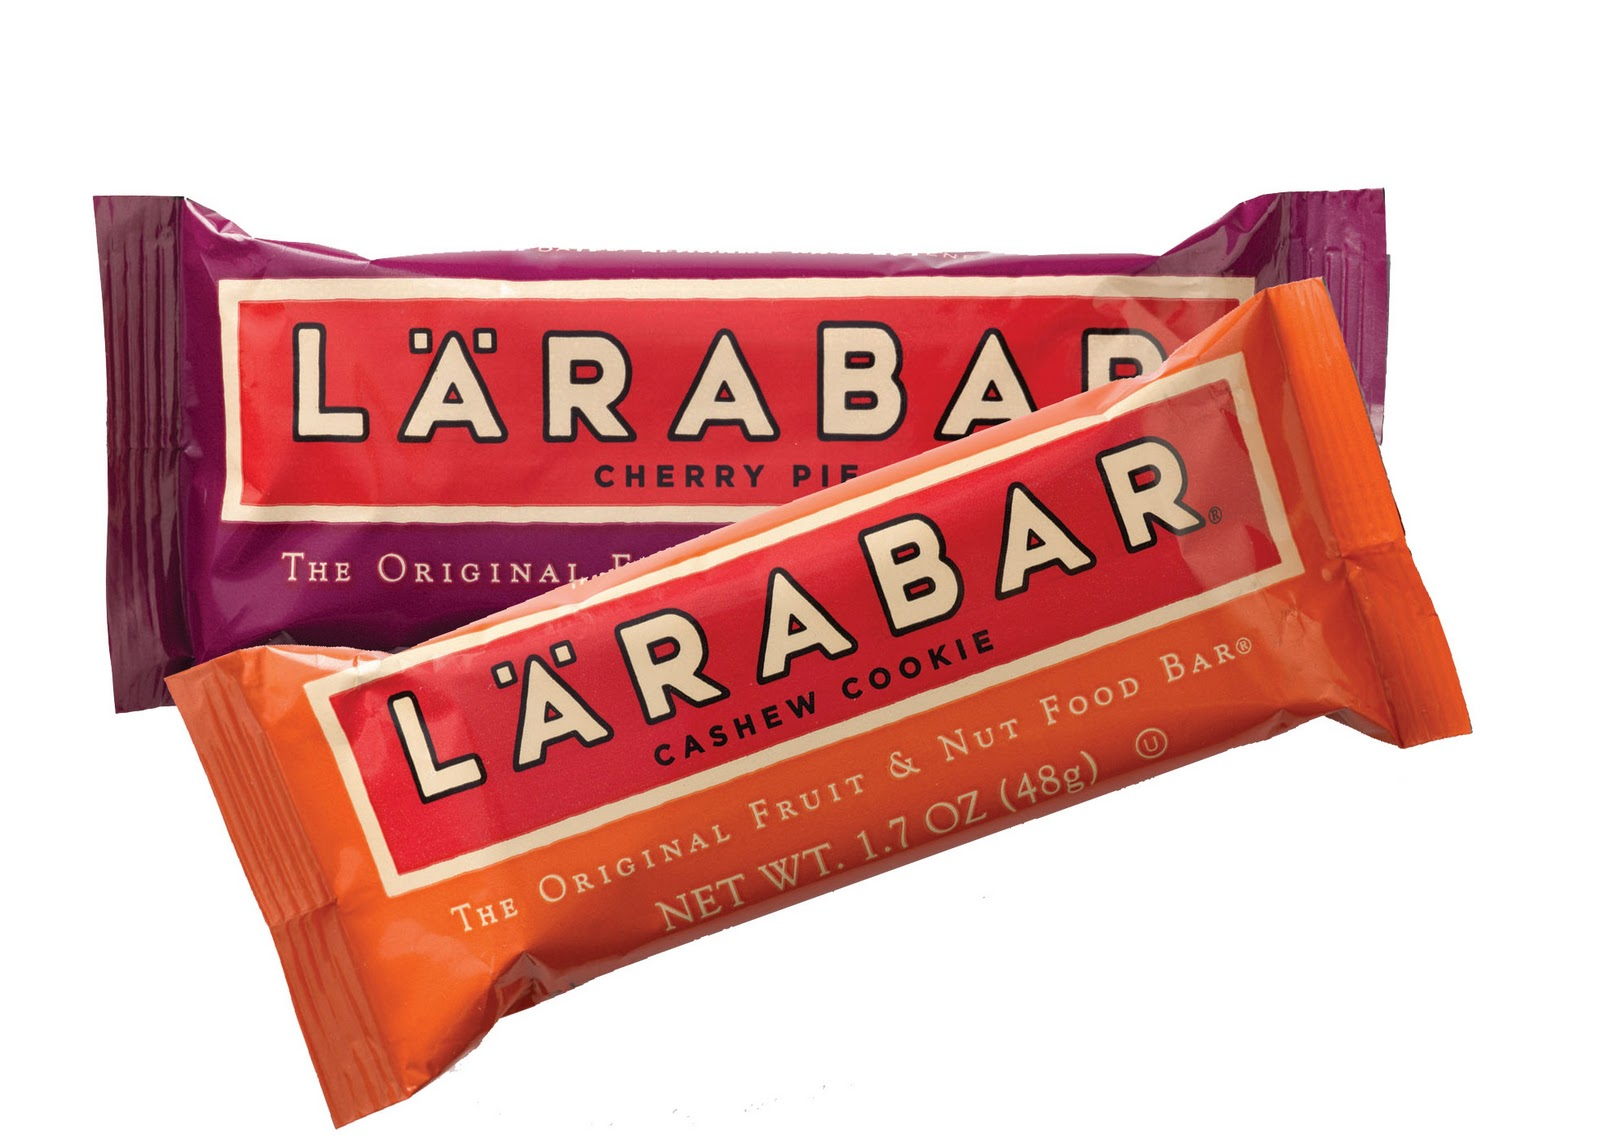 Larabars - Clean, MINIMAL ingredients!For original bars - Calories: 190-200 // Protein: 4-5gm // Sugar: 17-18gm (0-3 gm added sugar)P.S. if you want a smaller bite, they make kid's size Larabars!